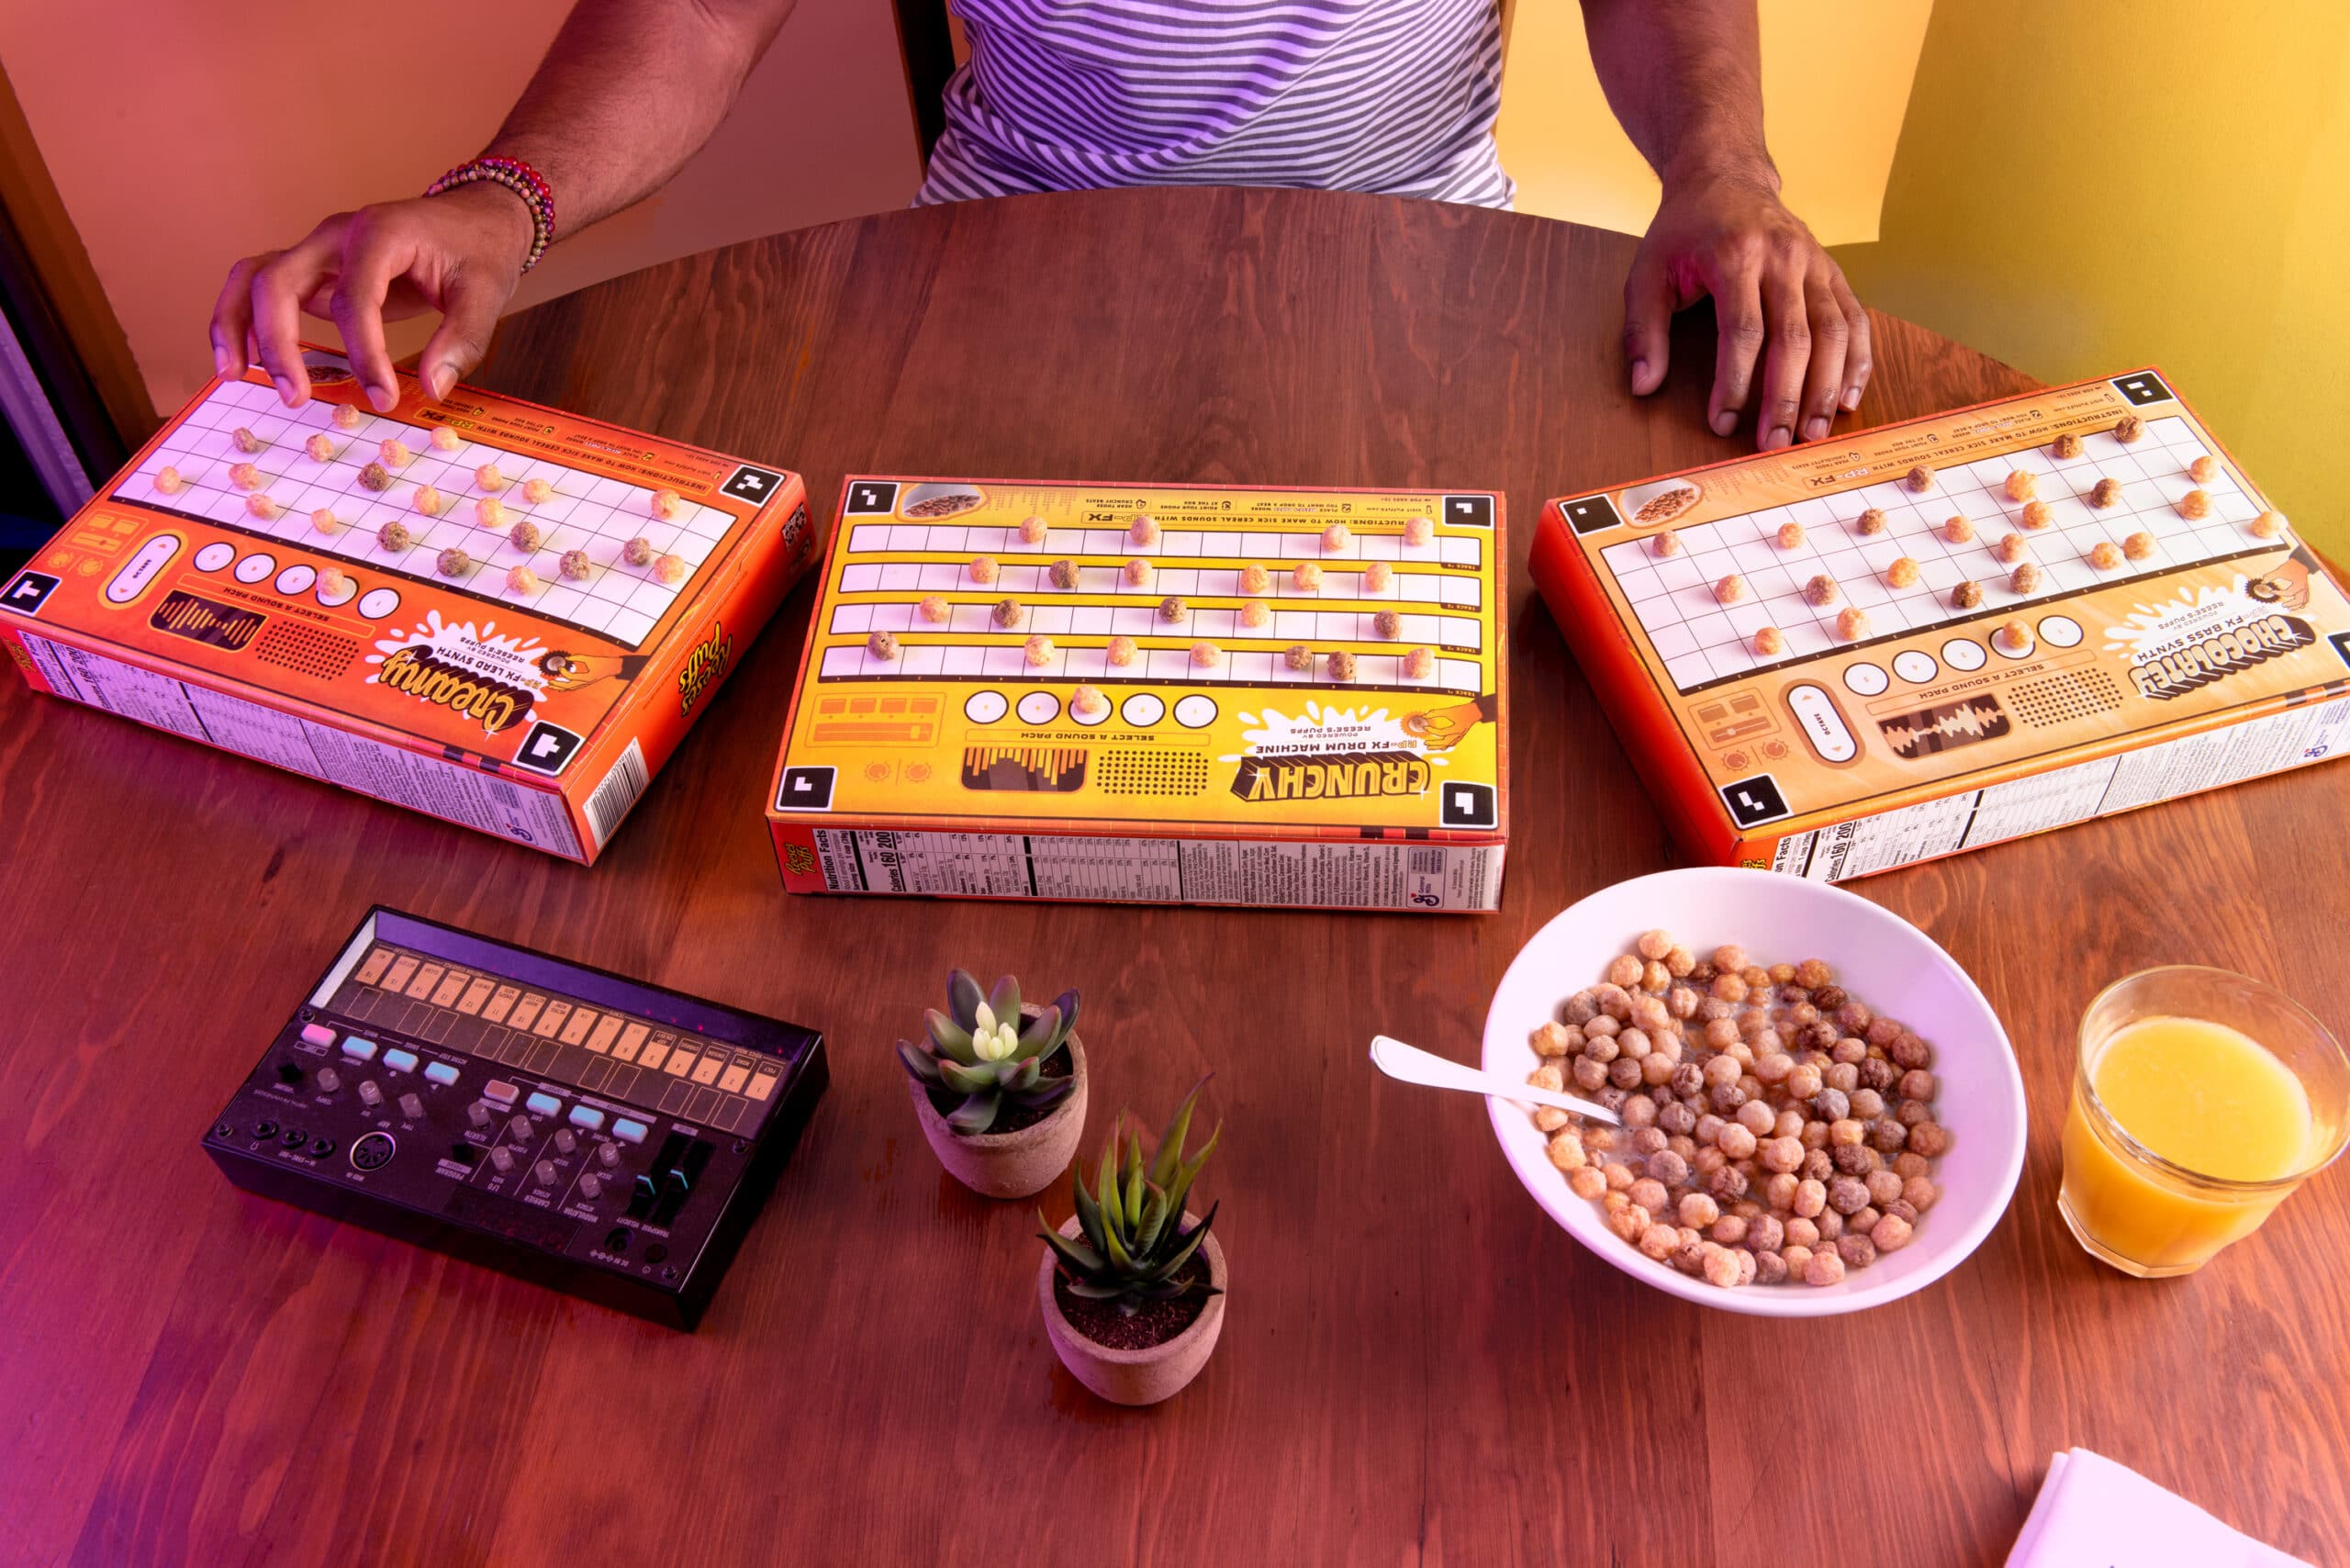 These Reese's Puffs cereal boxes let fans create their own music tracks 17